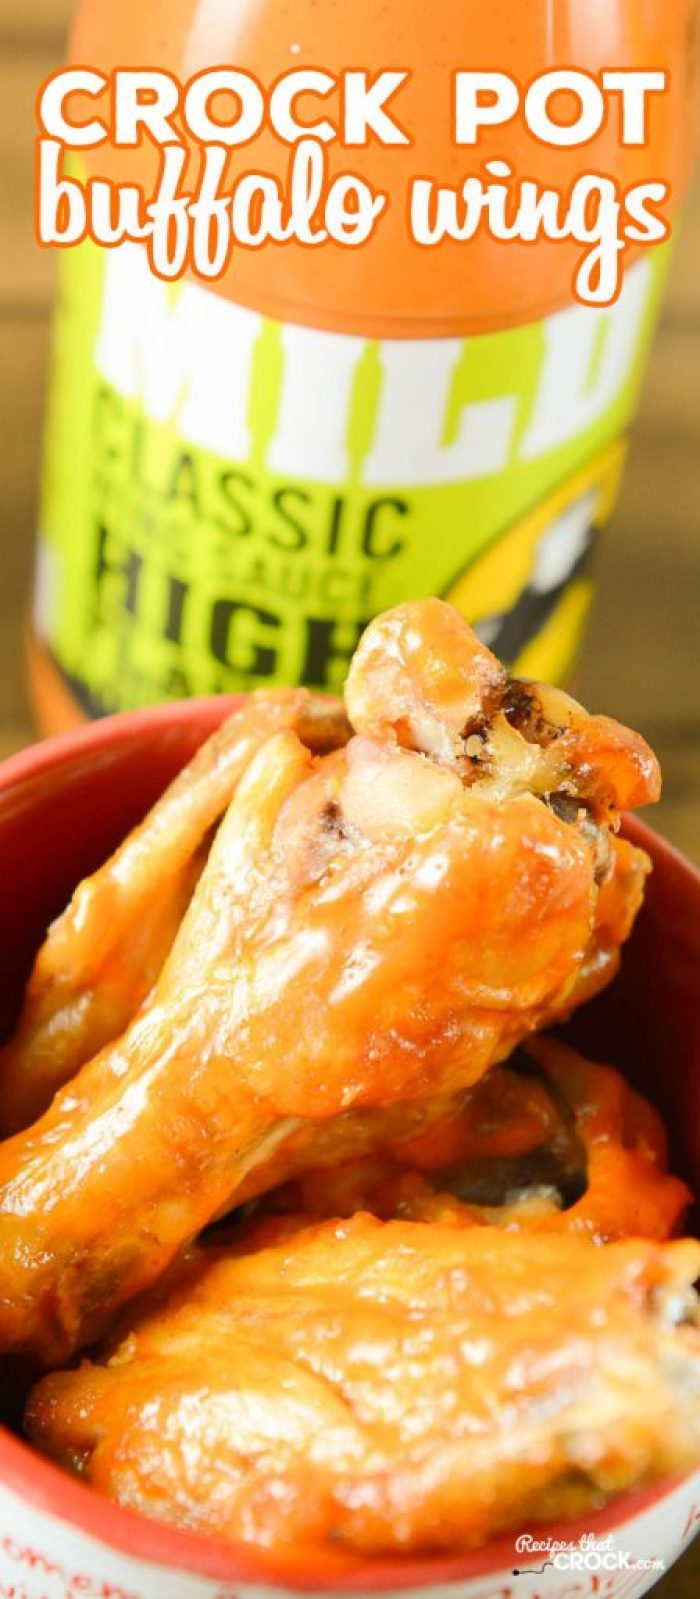 Check out our Crock Pot Buffalo Wings BW3 Copycat Recipe. Great low carb game day food or party appetizer.